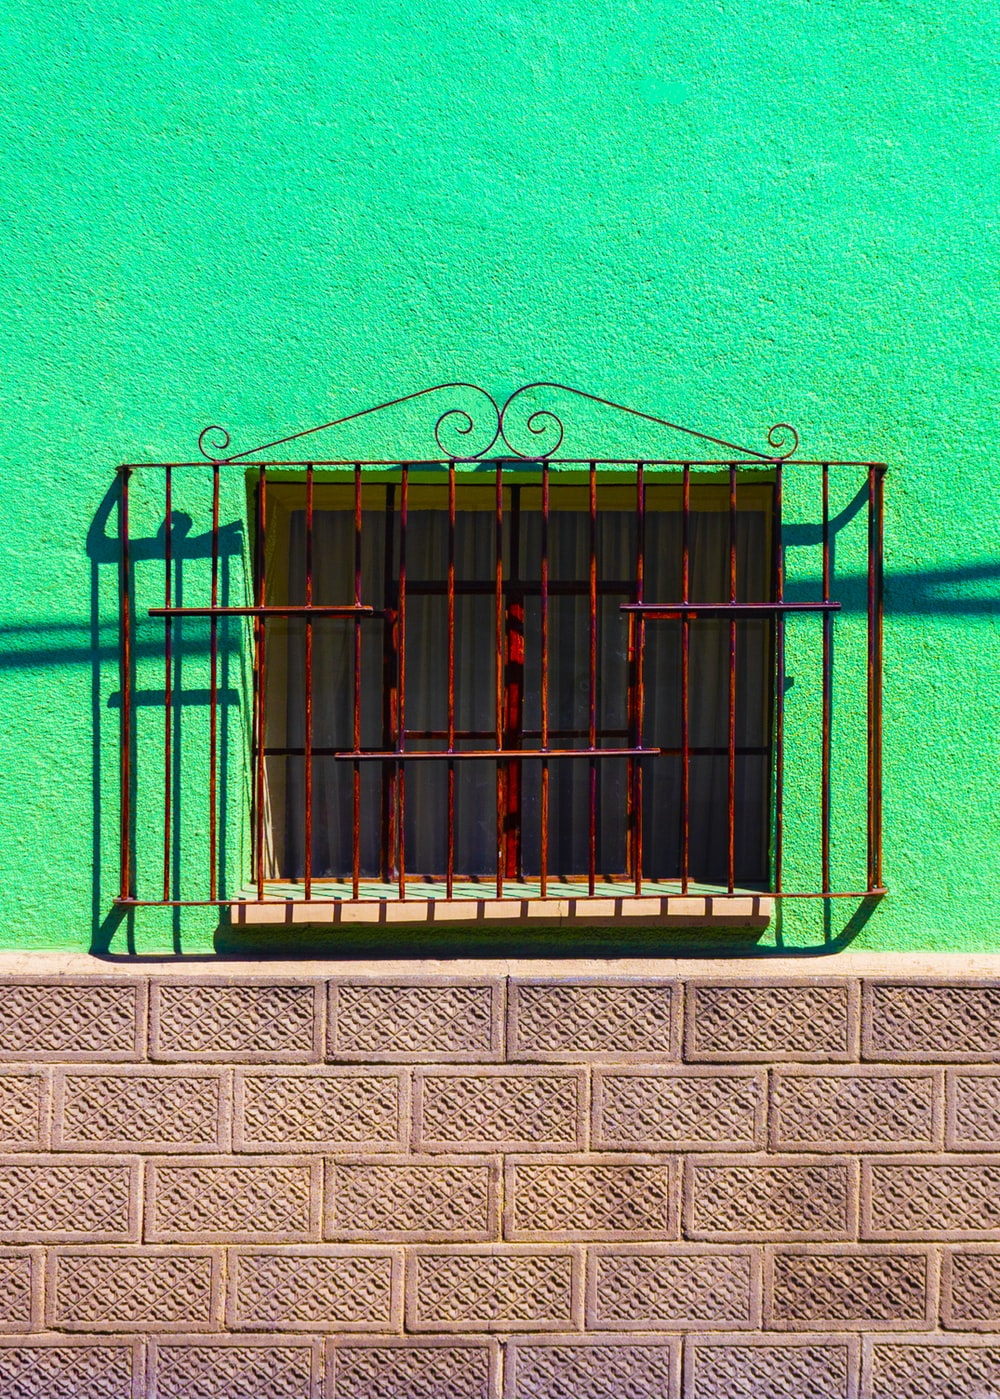 red metal window grille